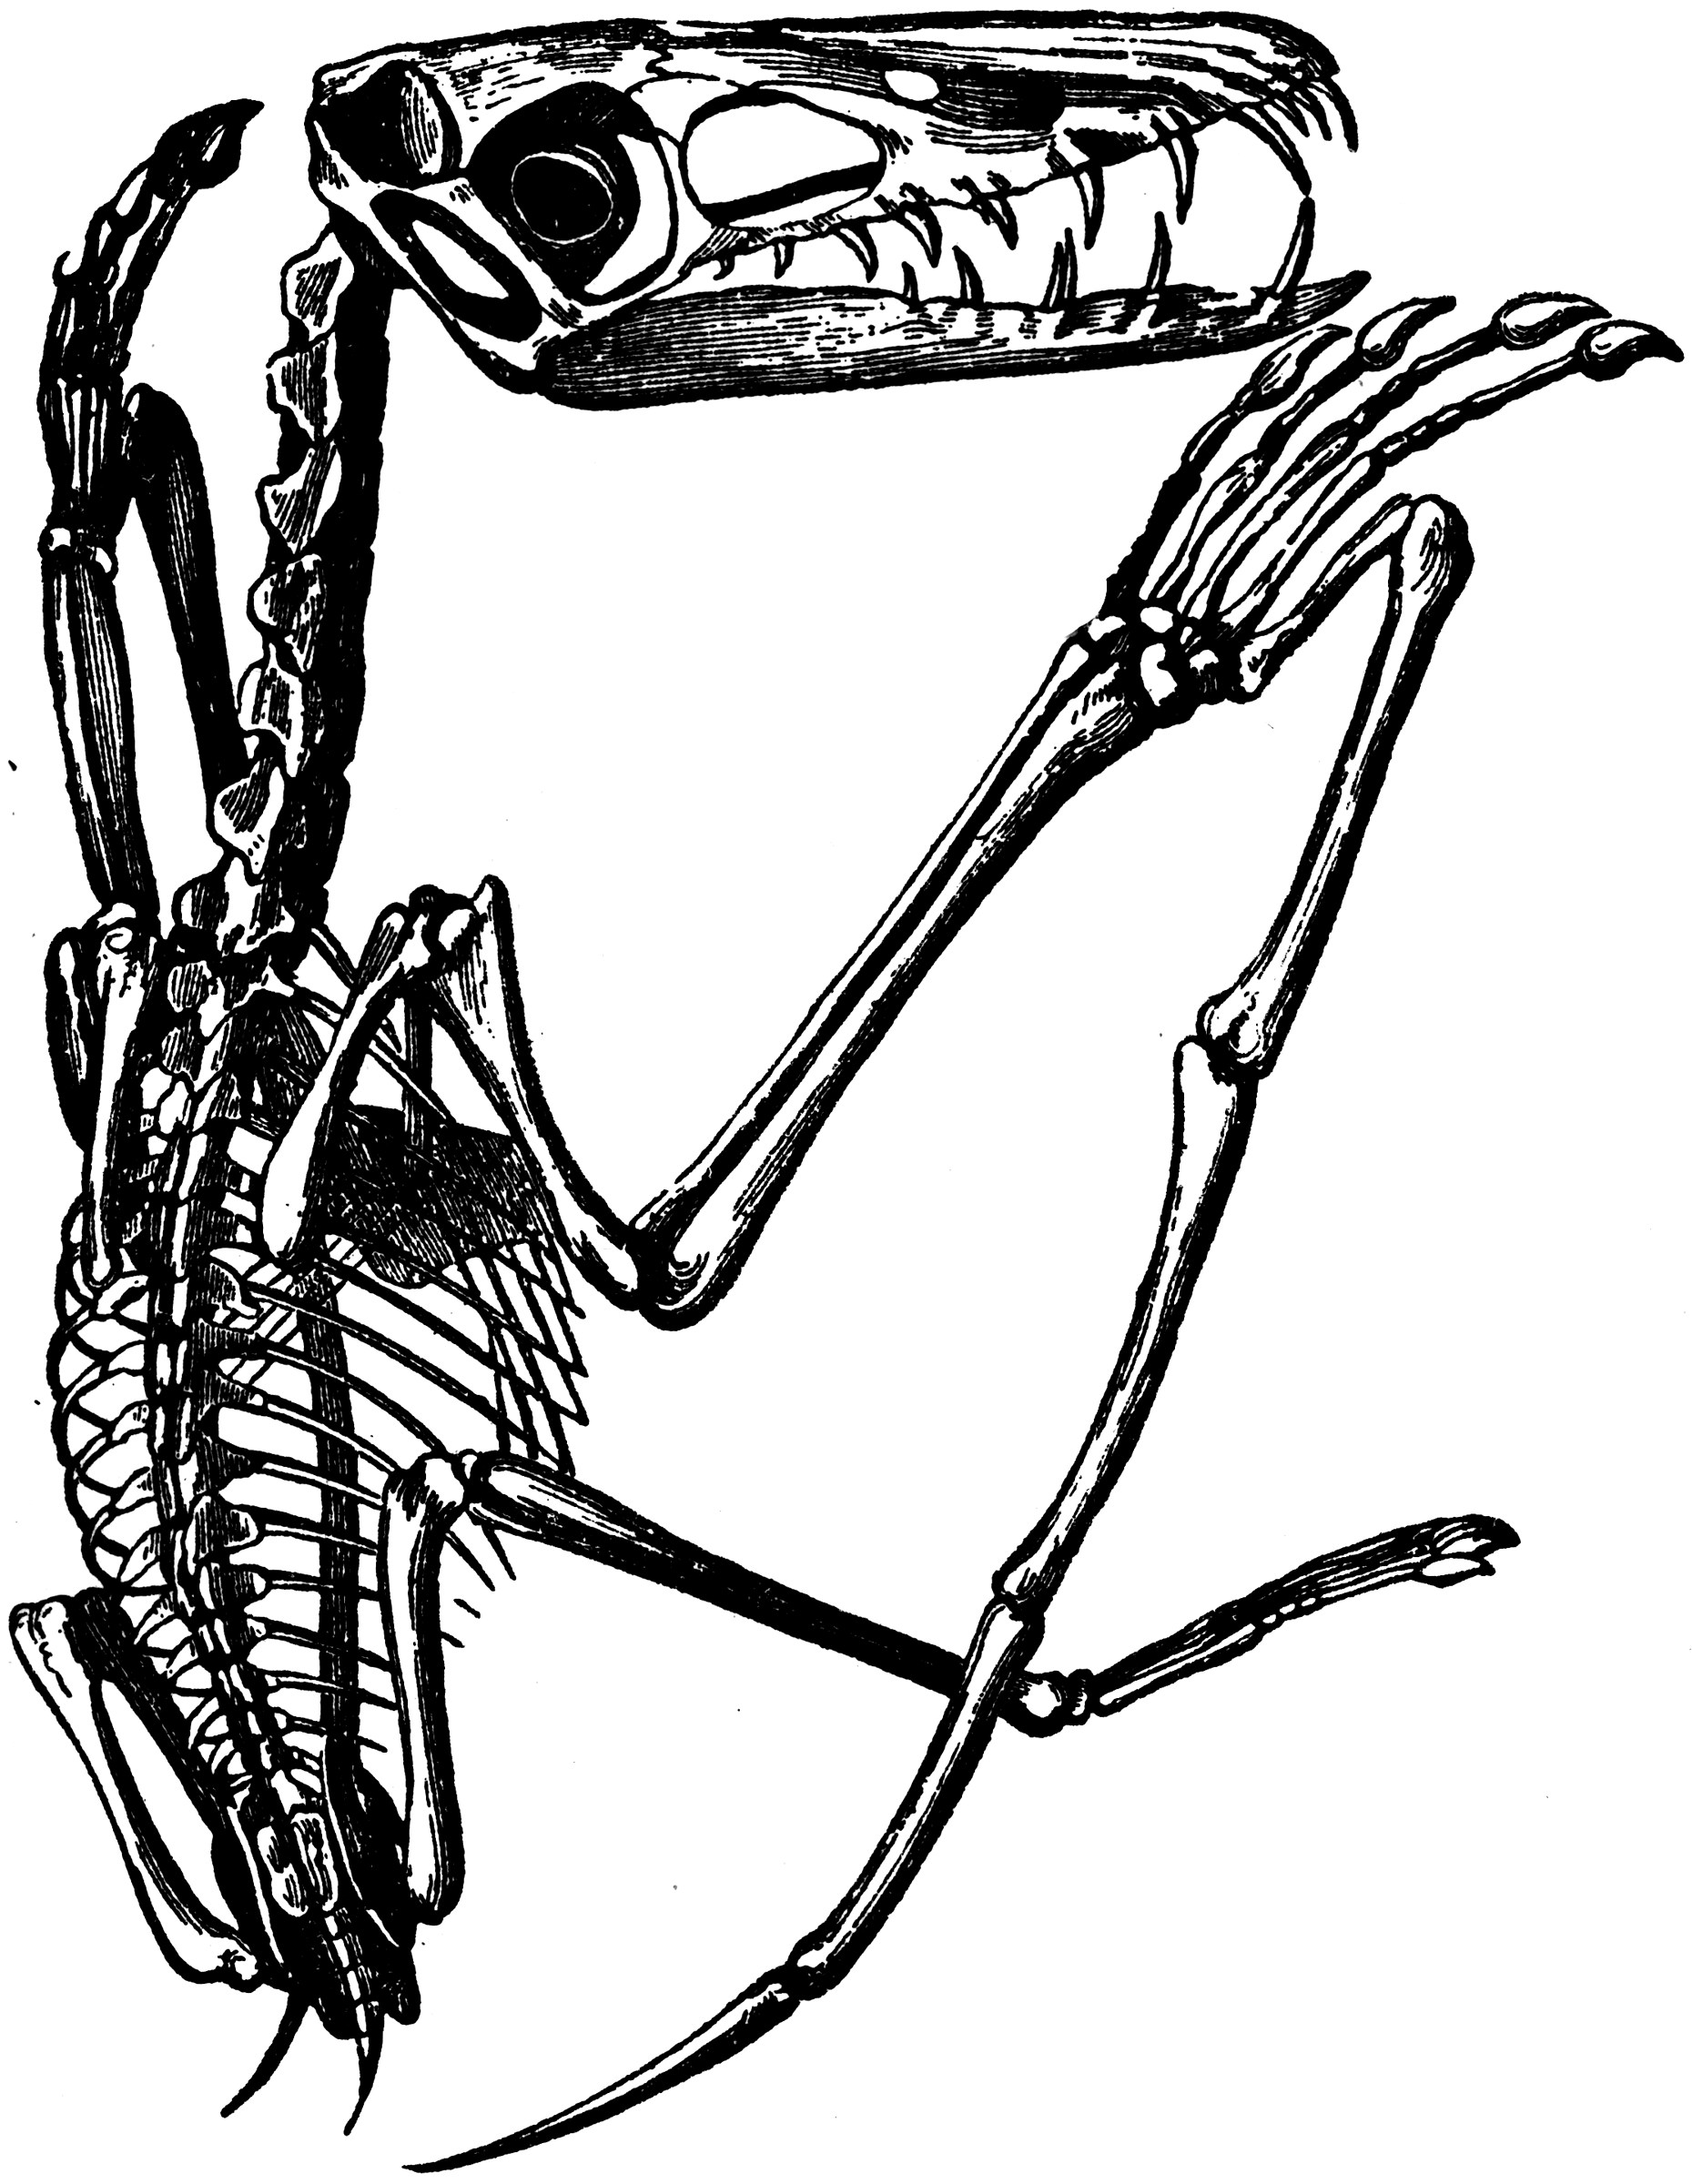 vole skeleton diagram electrical installation wiring diagrams and symbols pterodactyl clipart etc